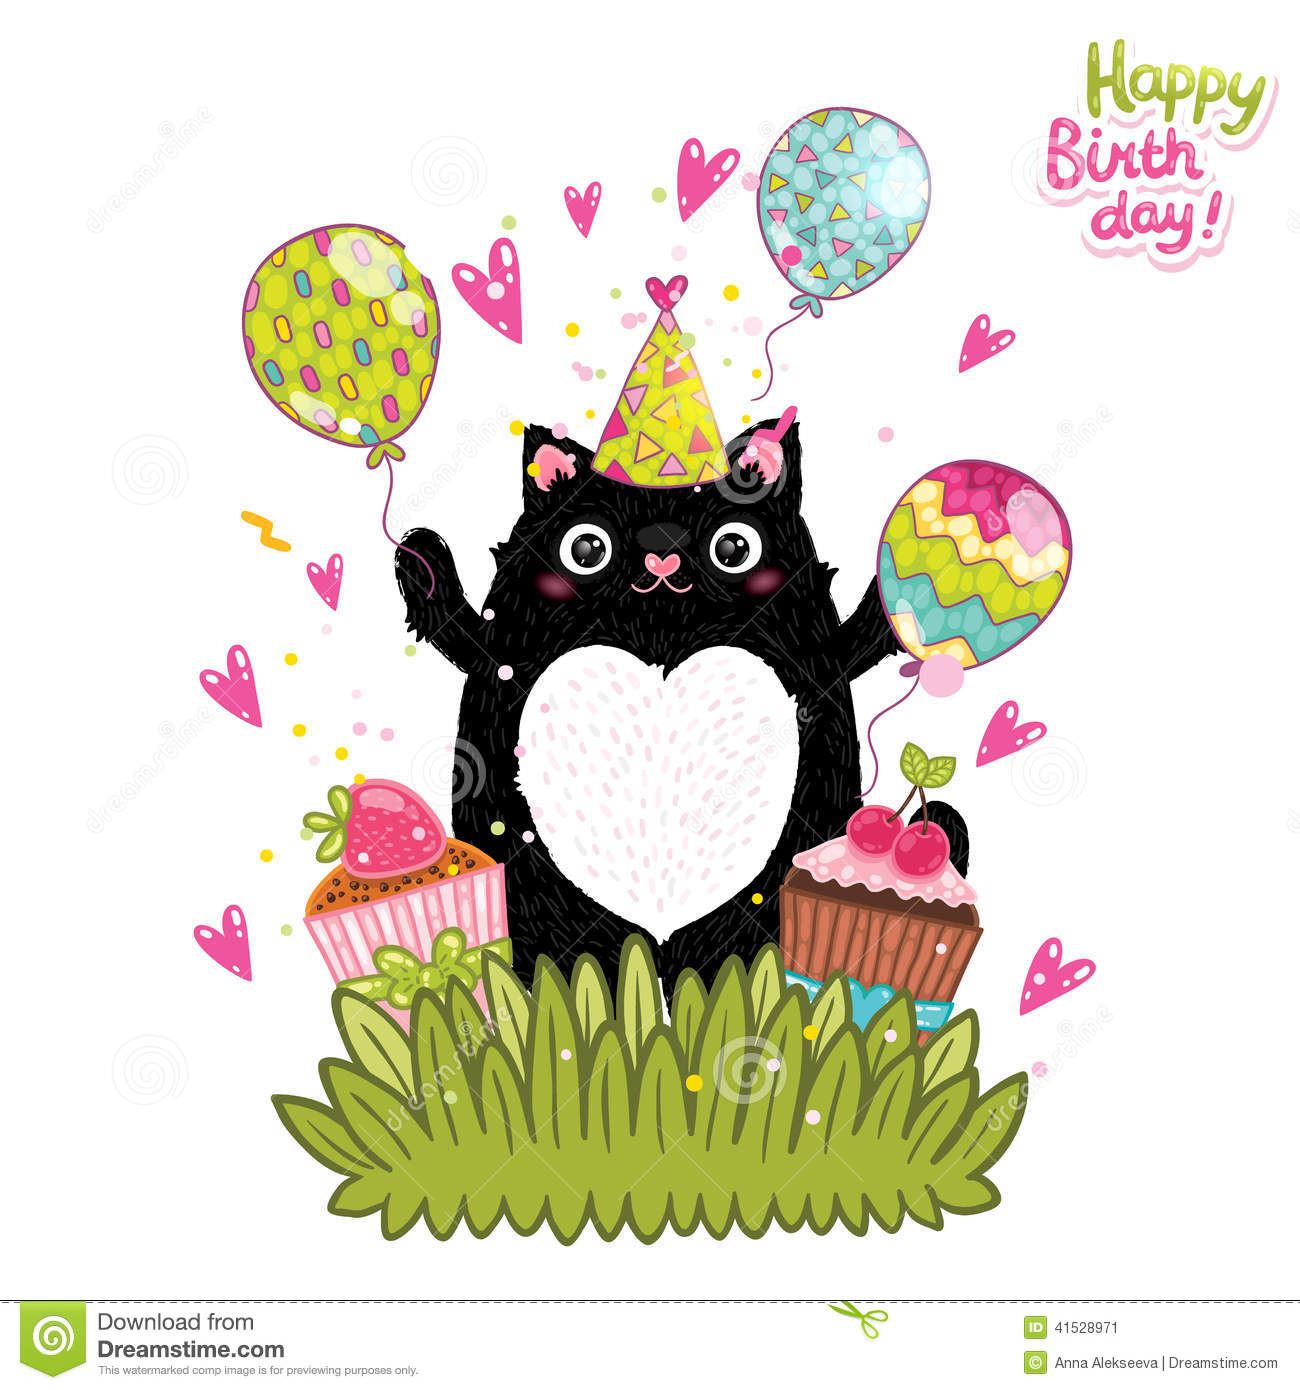 Cat happy birthday more information djekova happy birthday card background cat happy birthday bookmarktalkfo Image collections